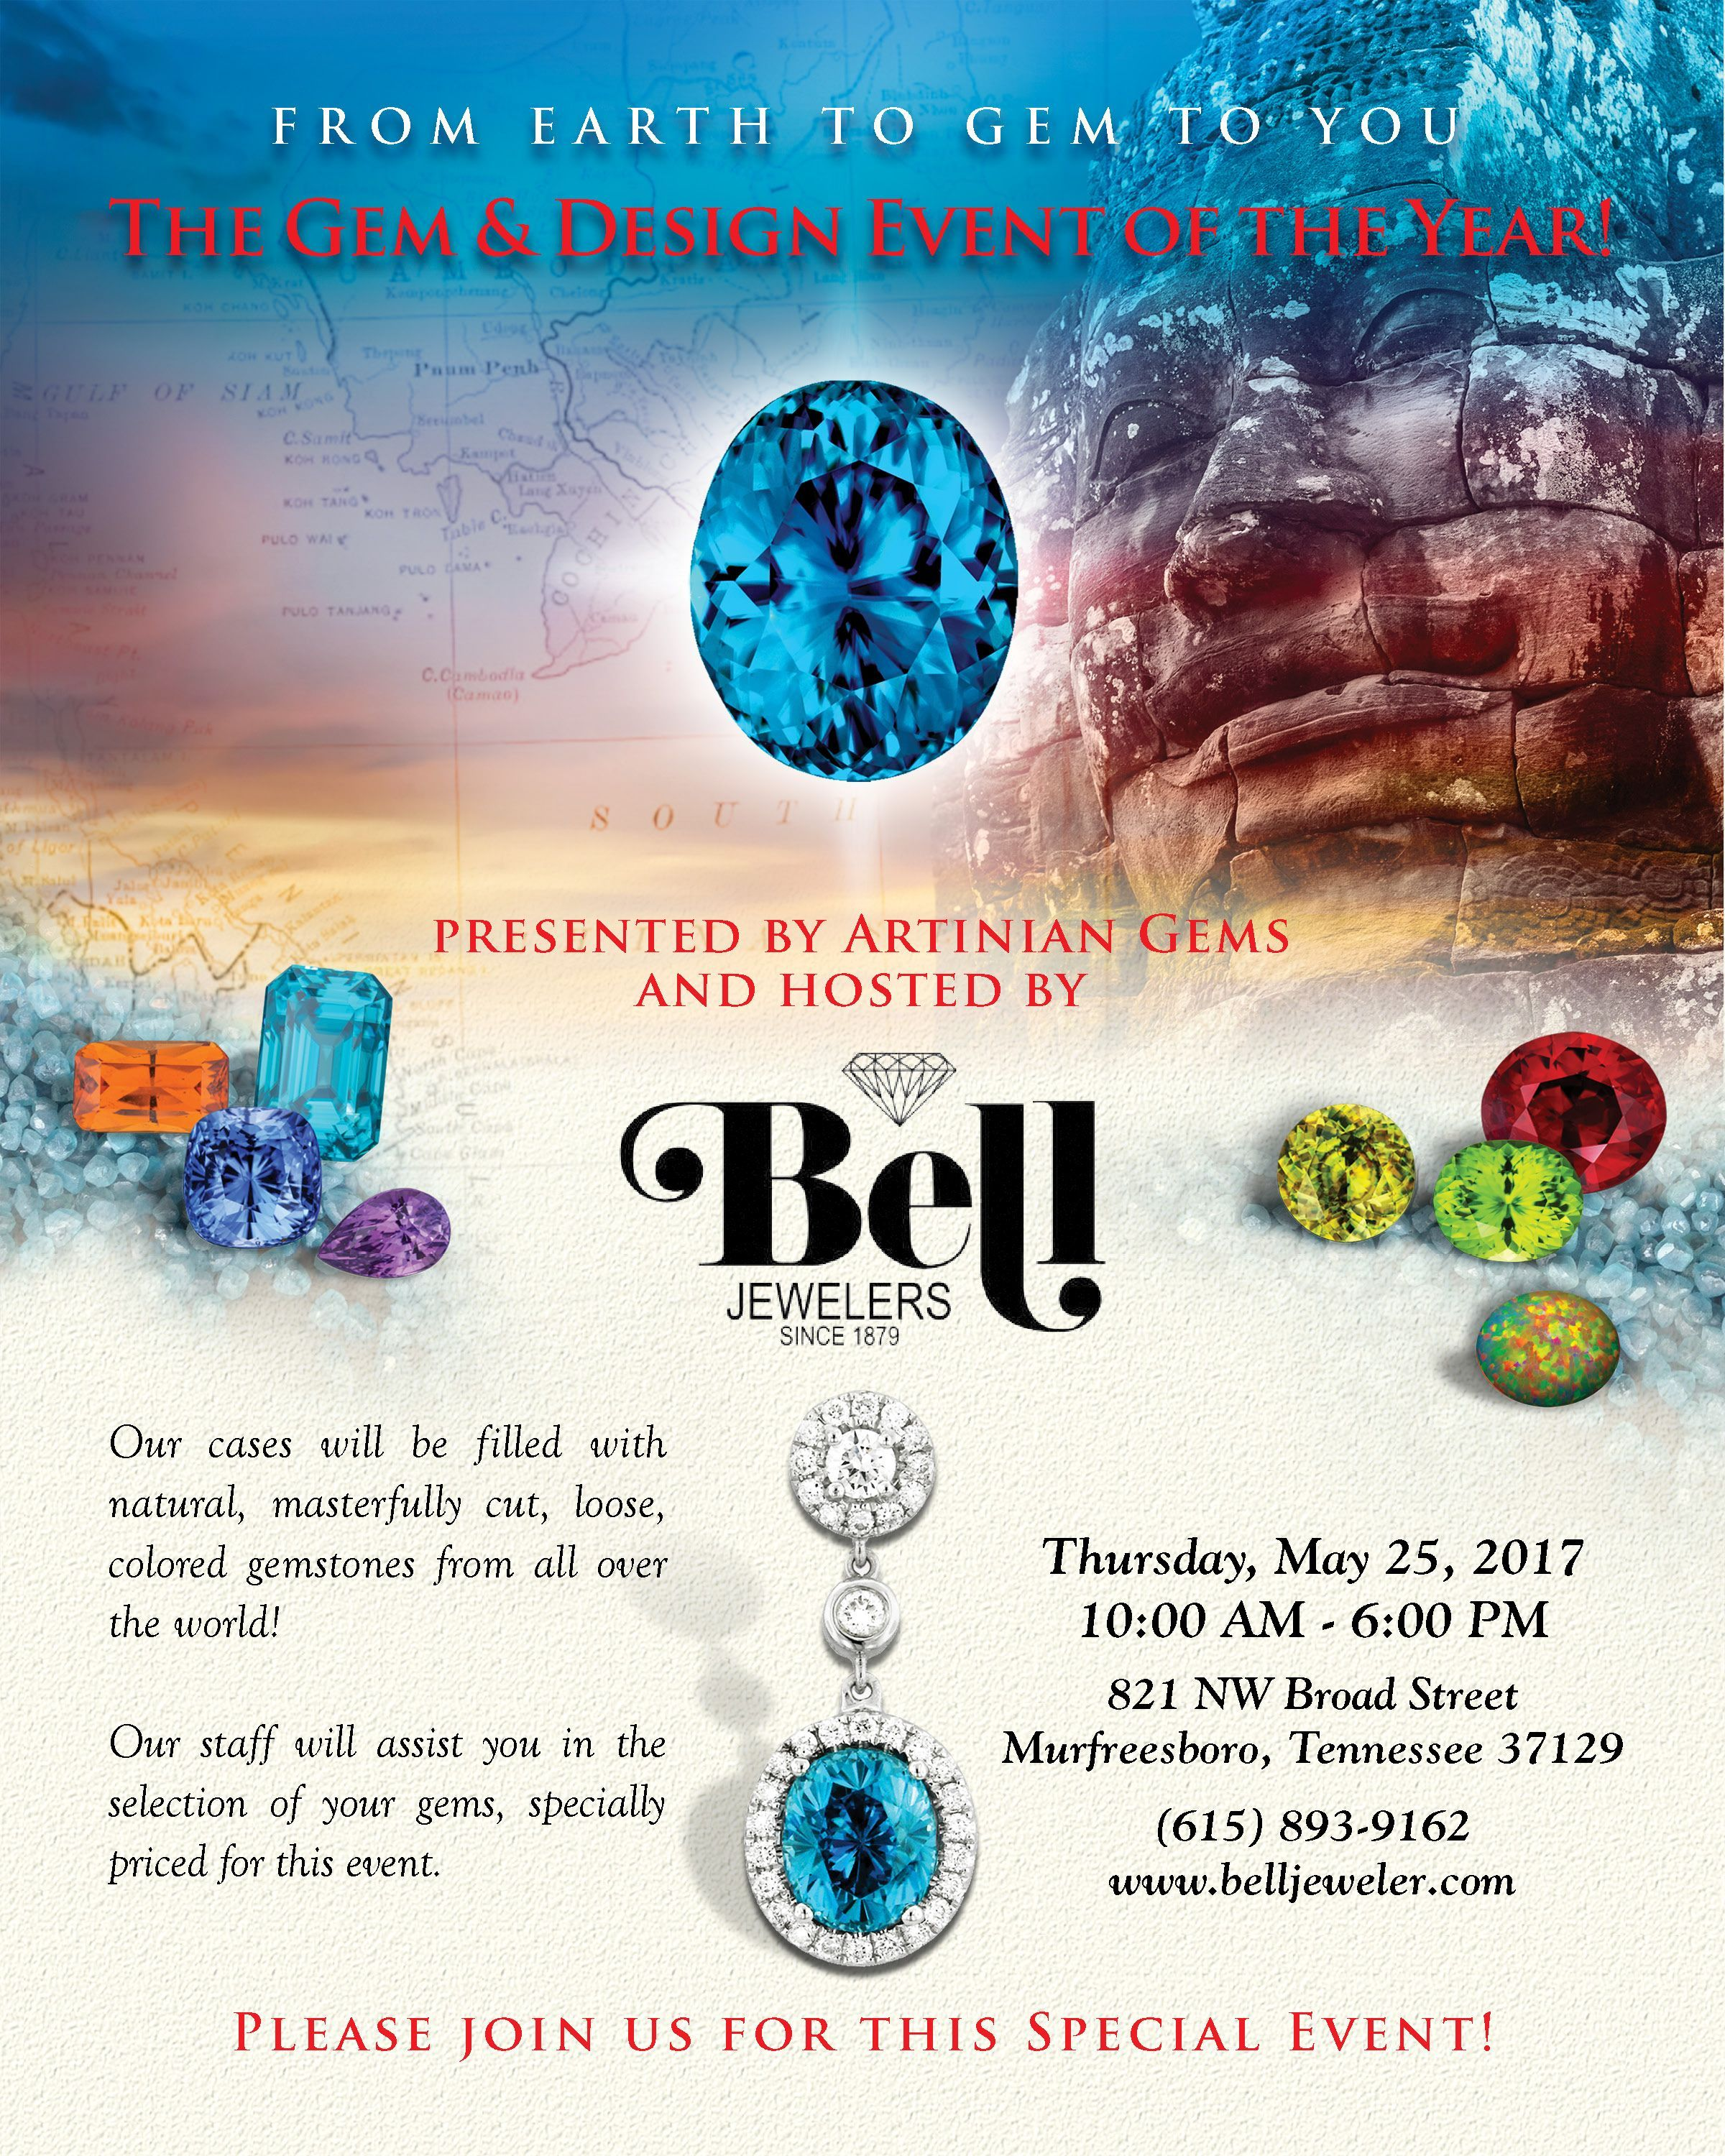 Save the date! Thursday May 25th From Earth to gem to you